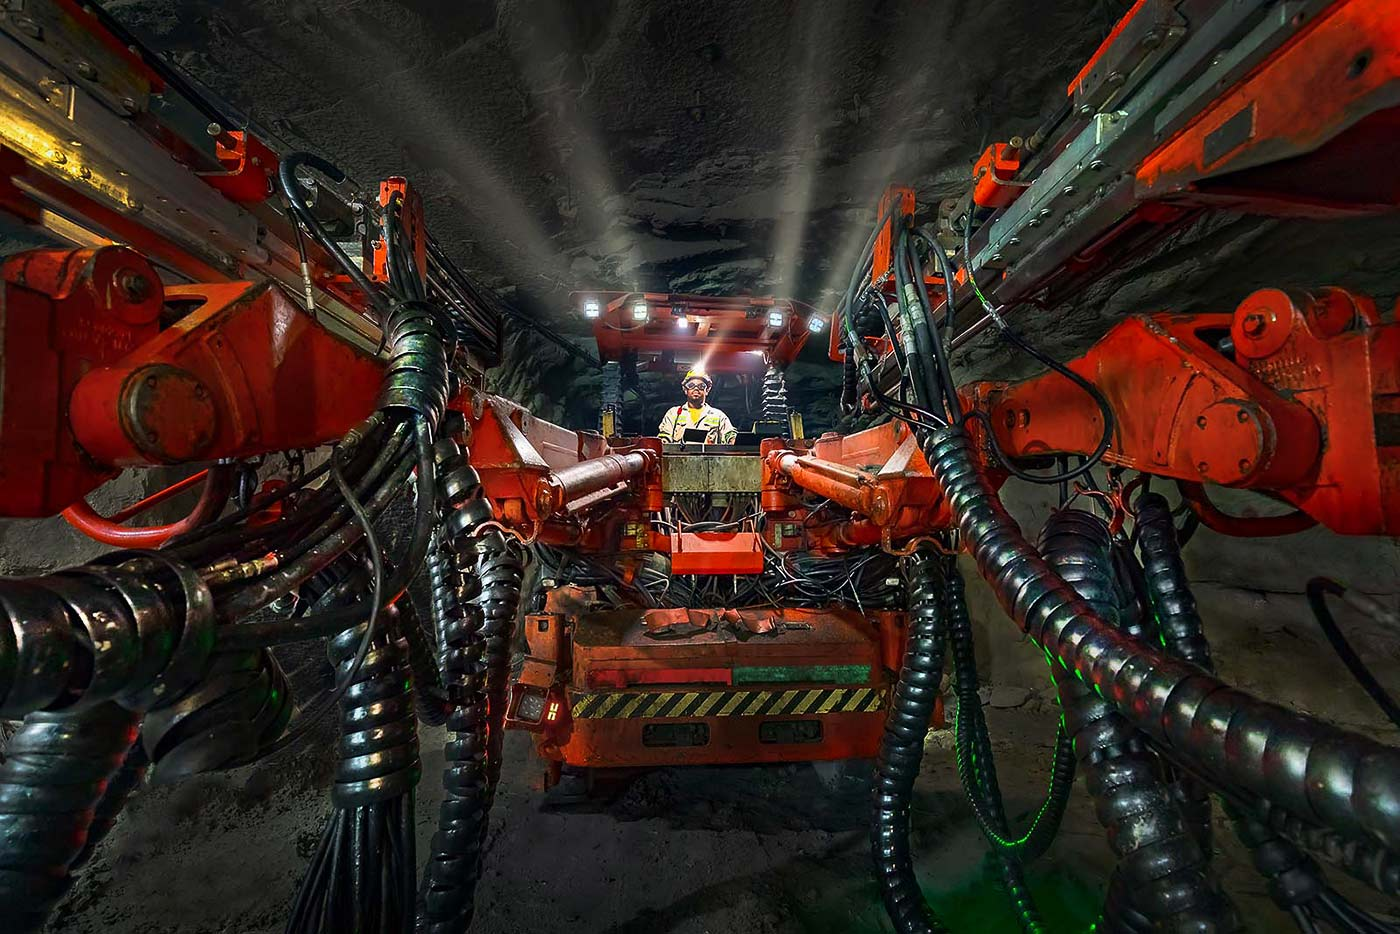 Twin boom trackless drill rig in action underground - mining machinery photography by Geoff Brown